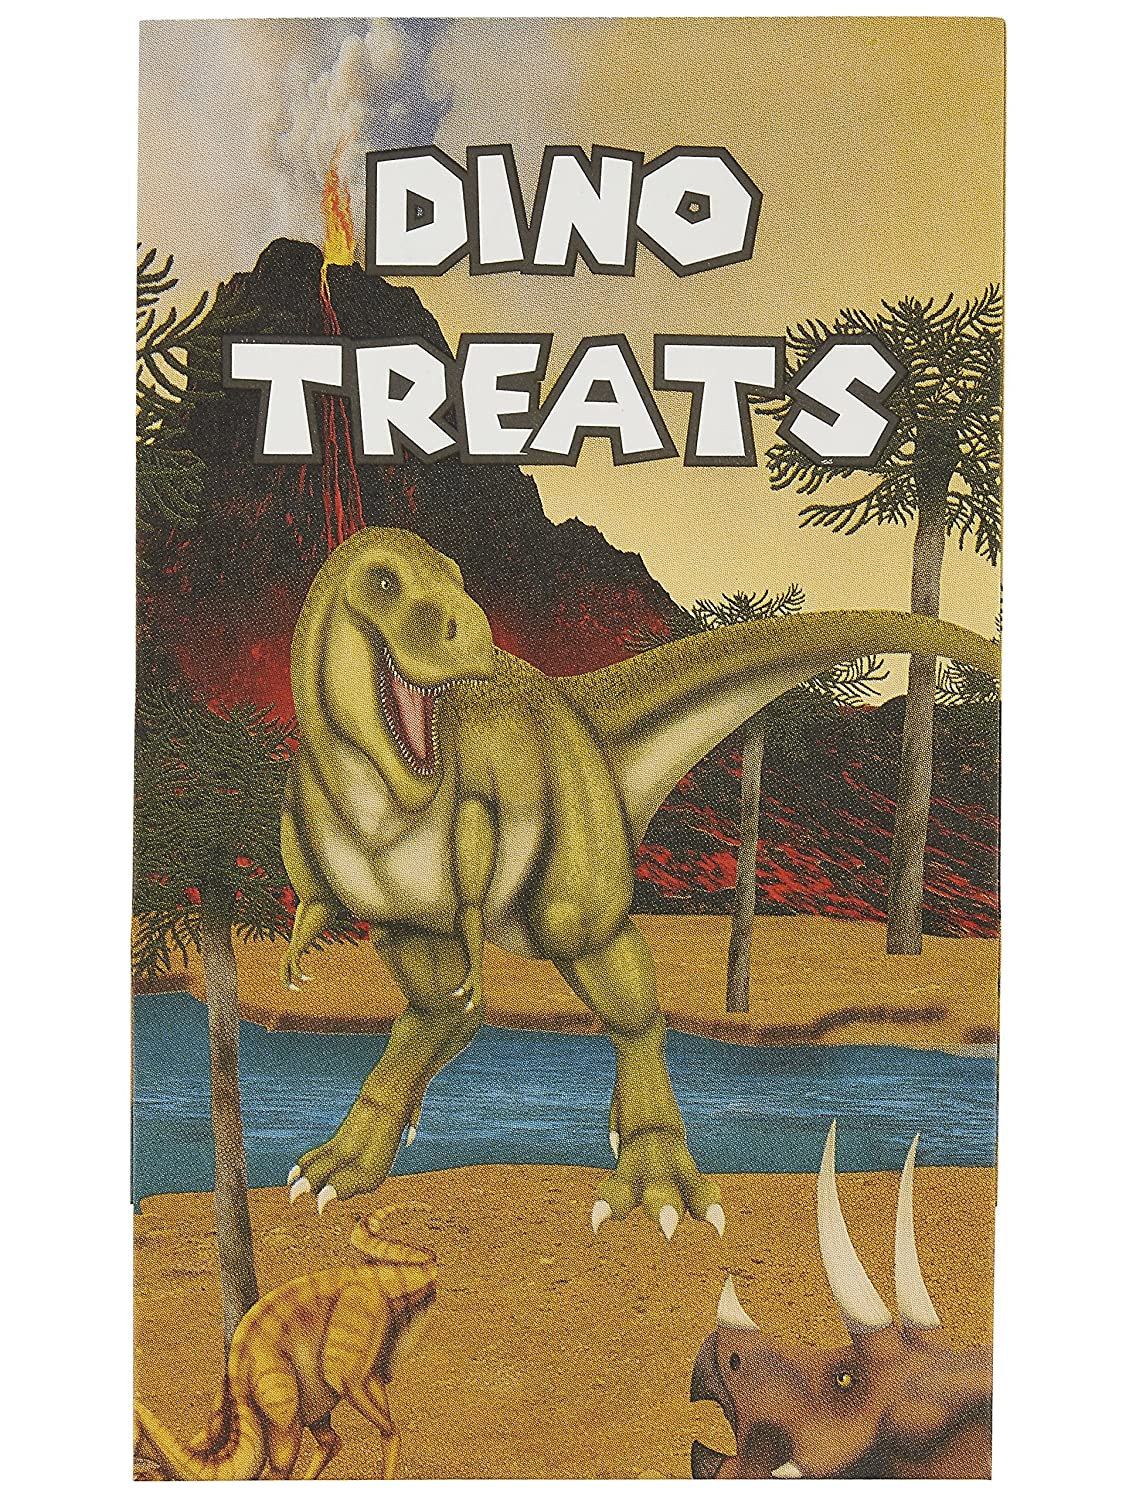 """Small Paper Favor Bags for Boys 36-Pack Party Gift Bags 5.2 x 8.7 x 3.3 Inches Dinosaur Themed Party Supplies /""""Dino Treat/"""" Bags Kids Birthday Party Goodies"""